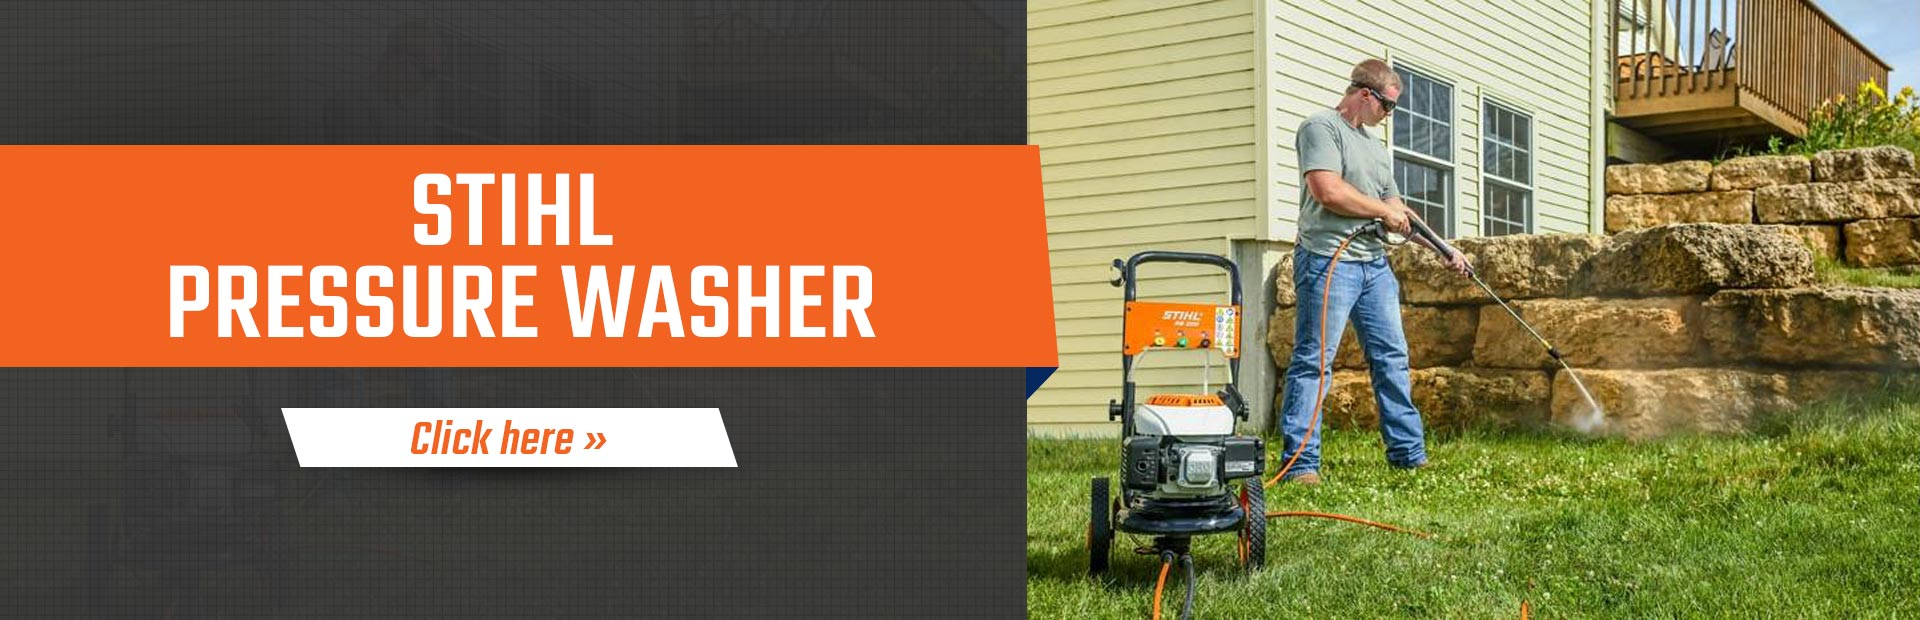 Stihl Pressure Washer: Click here now!